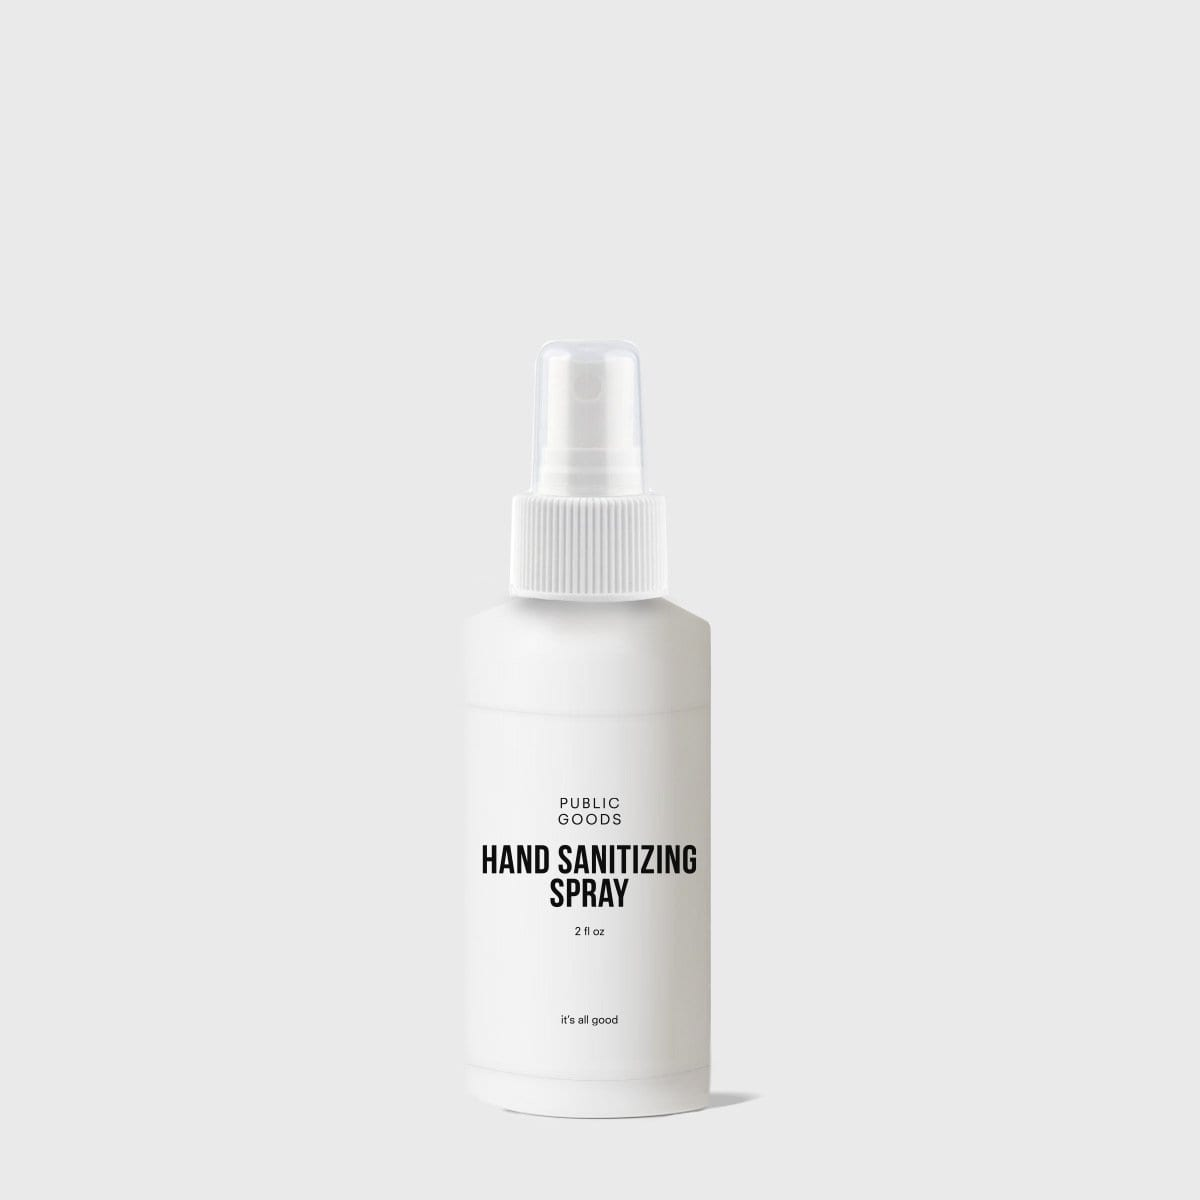 Public Goods Hand Sanitizer Spray / Neighborhood Goods